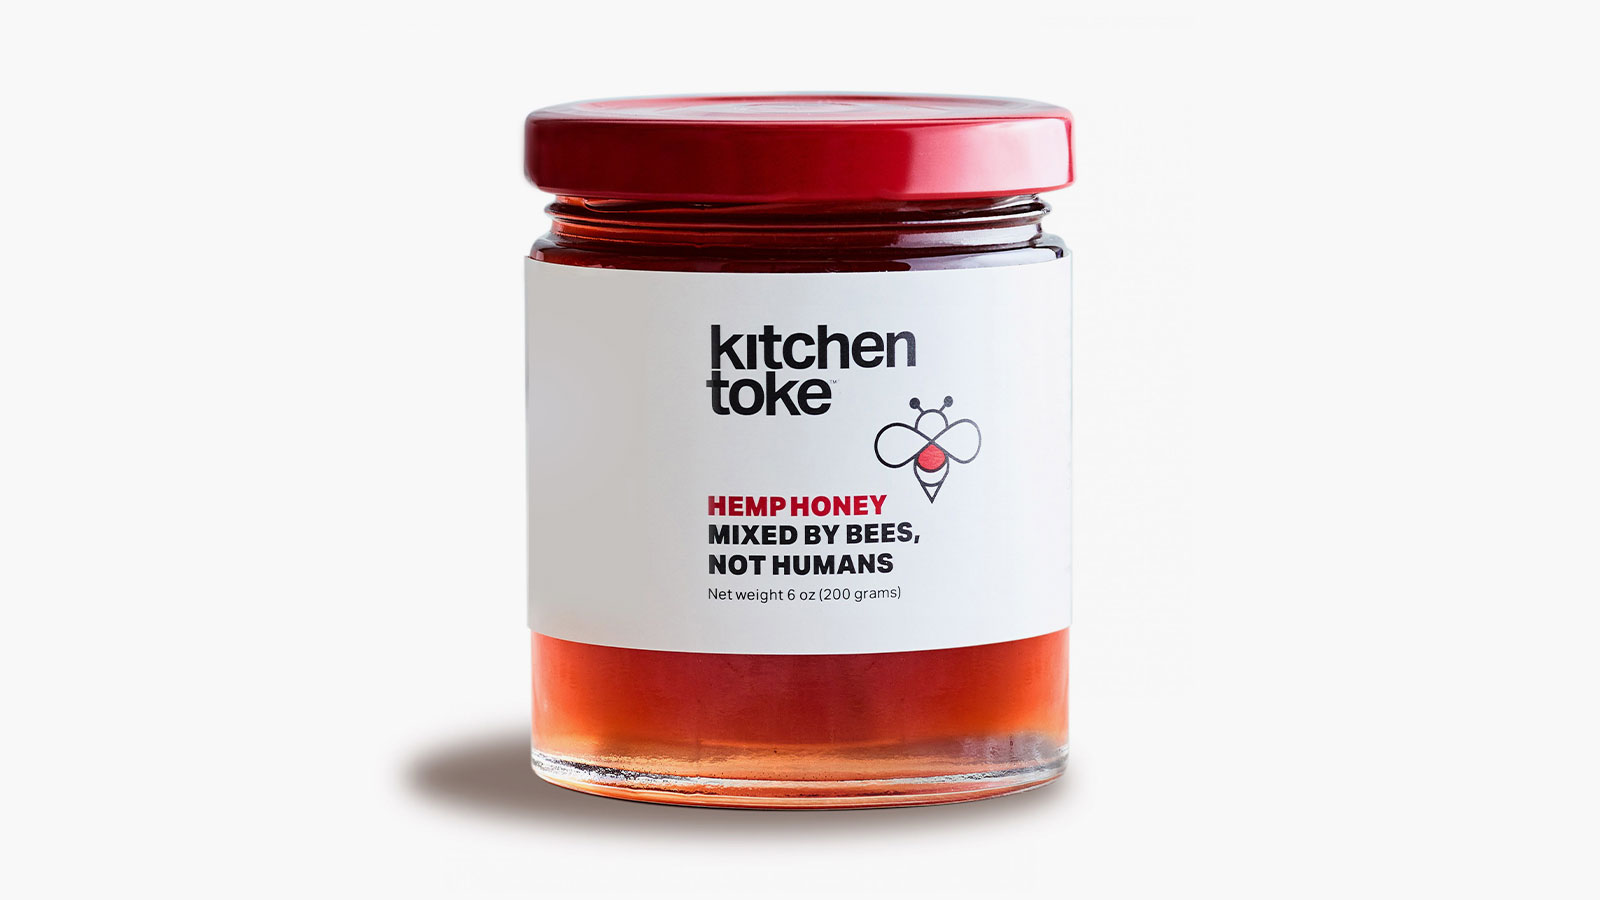 Kitchen Toke Hemp Honey